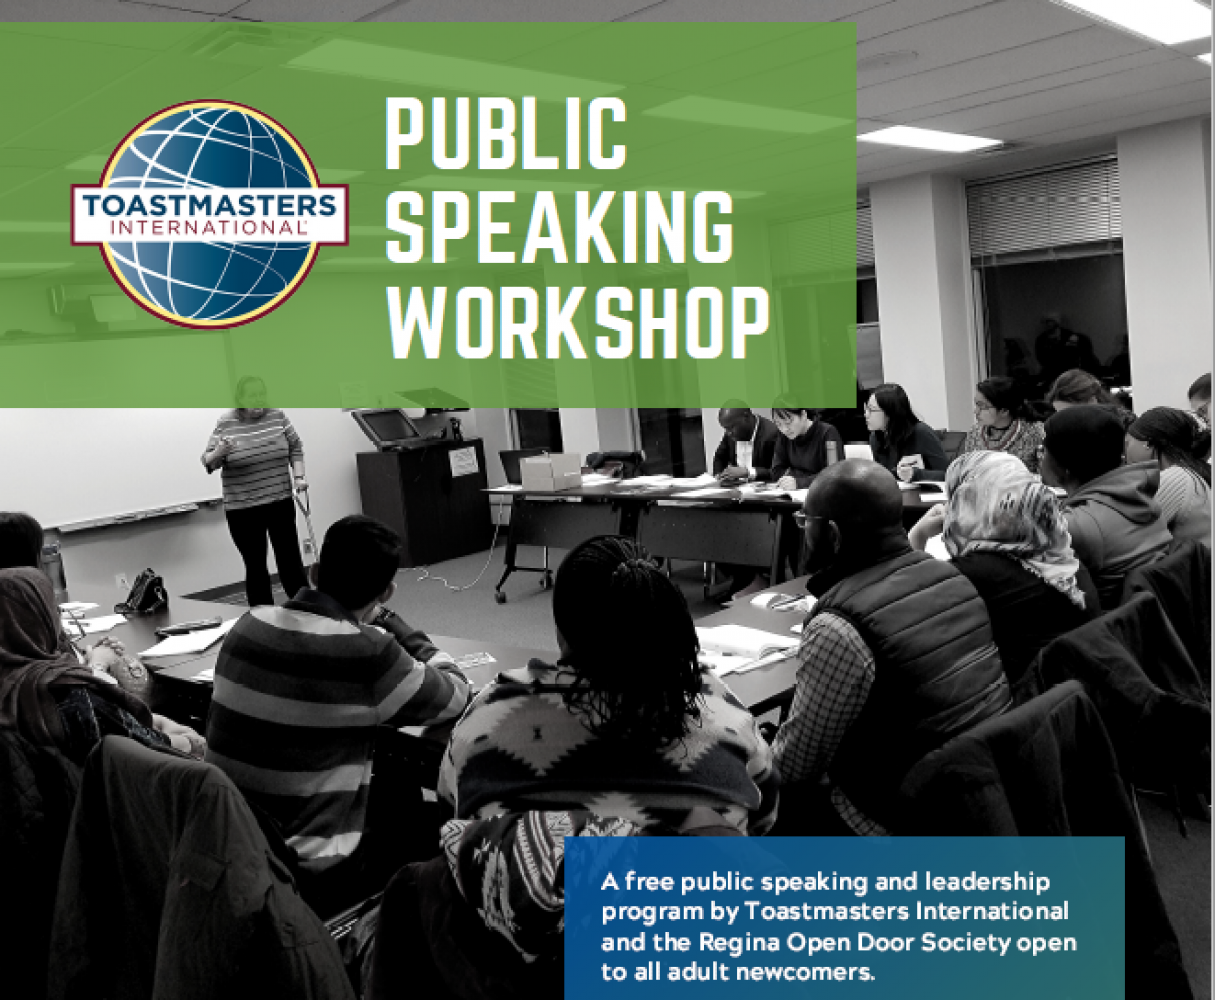 Public Speaking Workshop for Newcomers